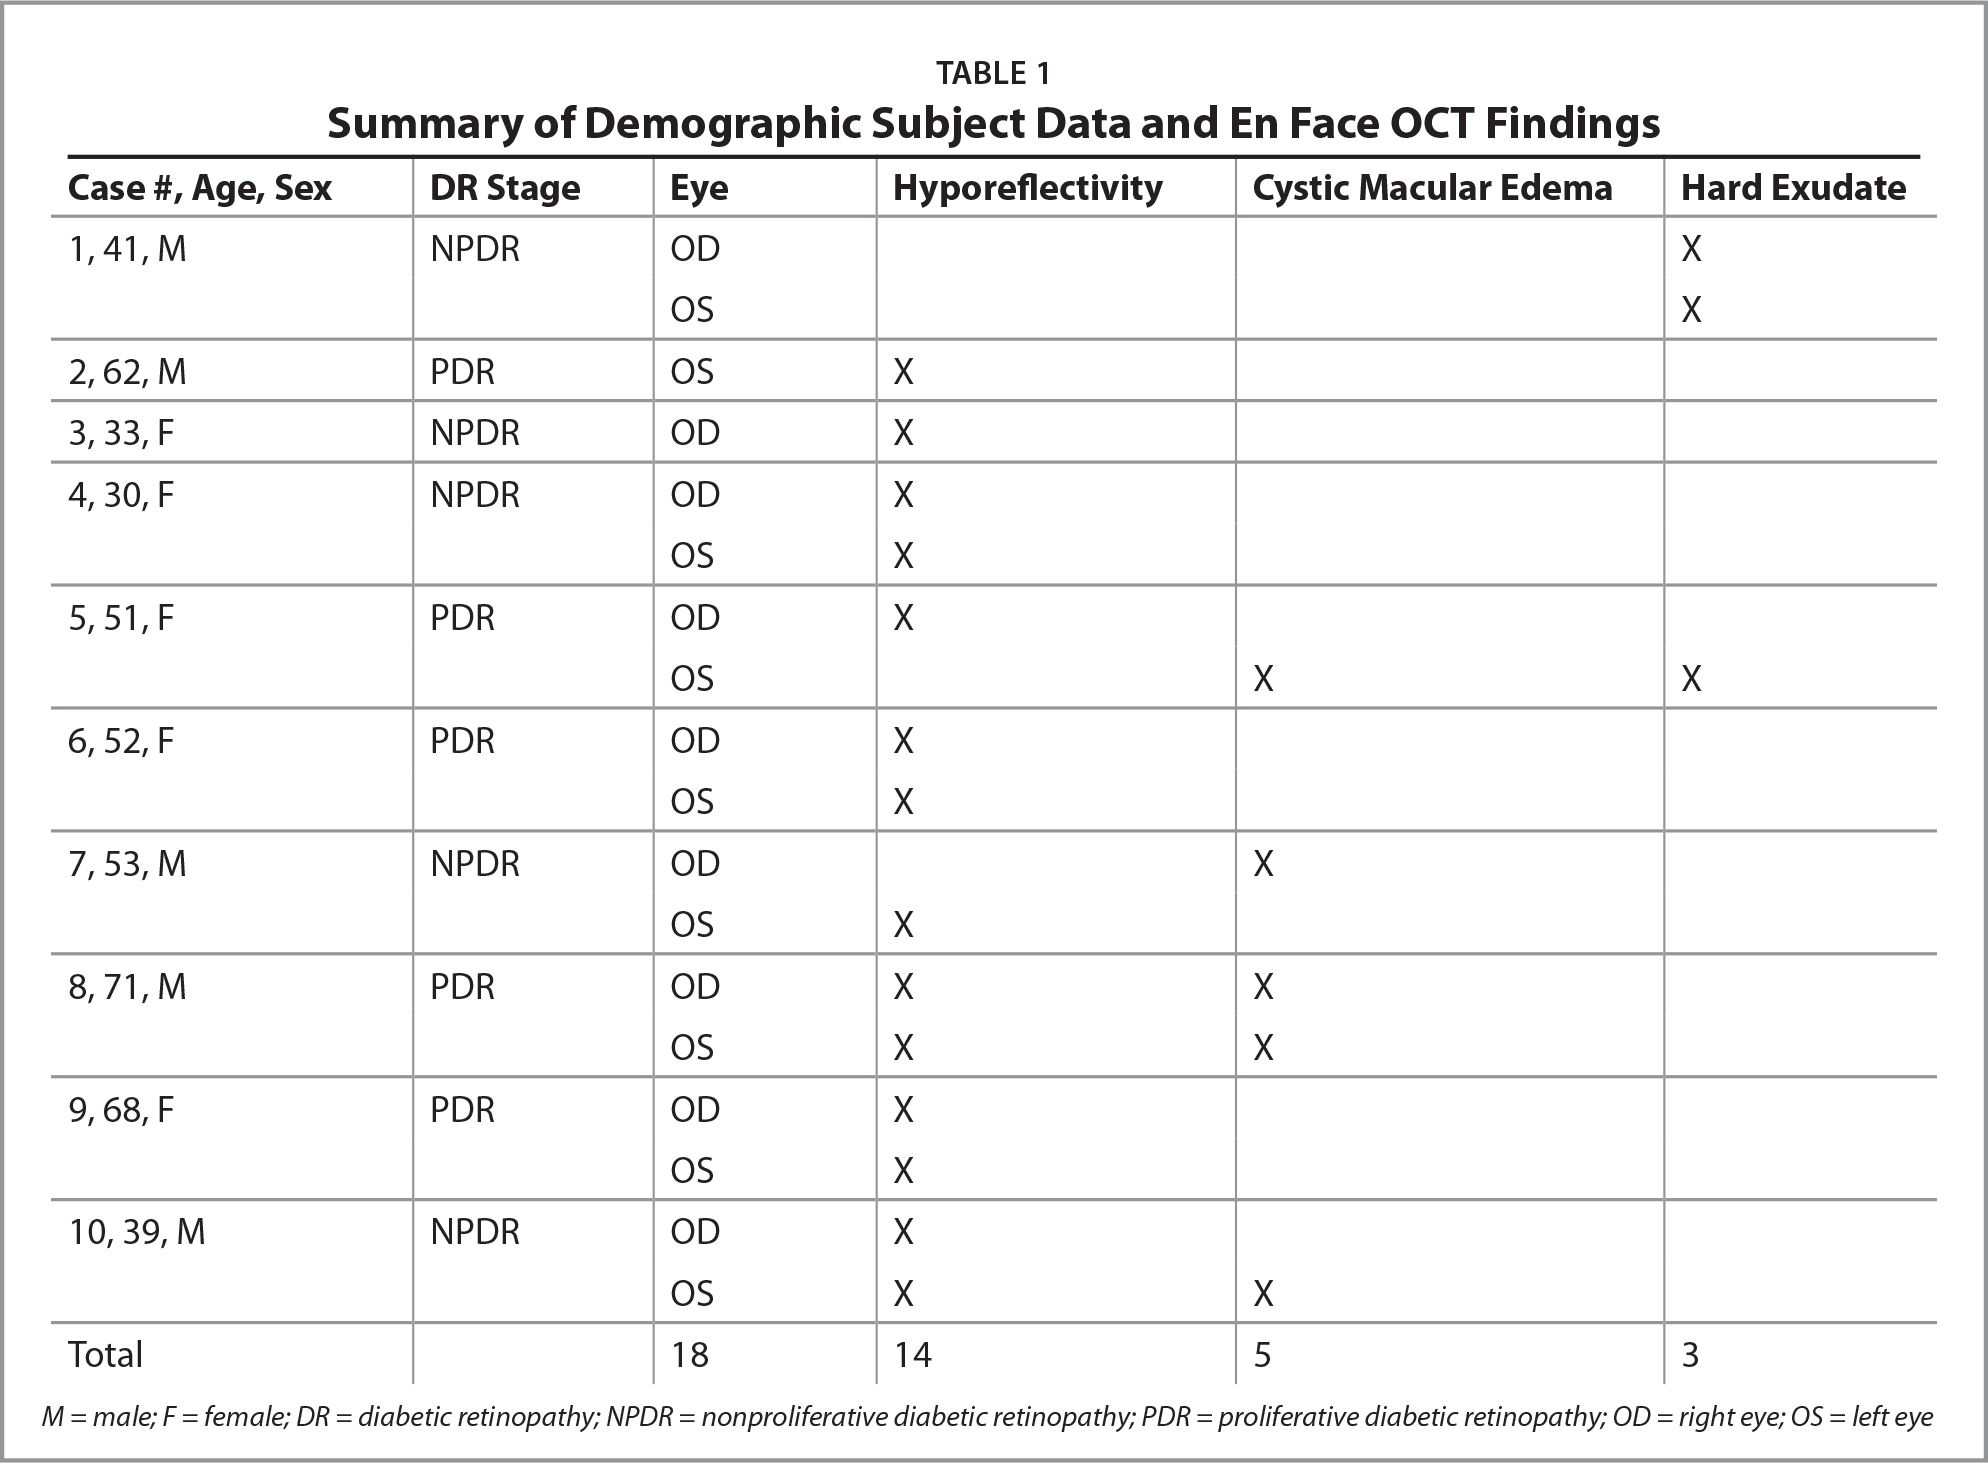 Summary of Demographic Subject Data and En Face OCT Findings